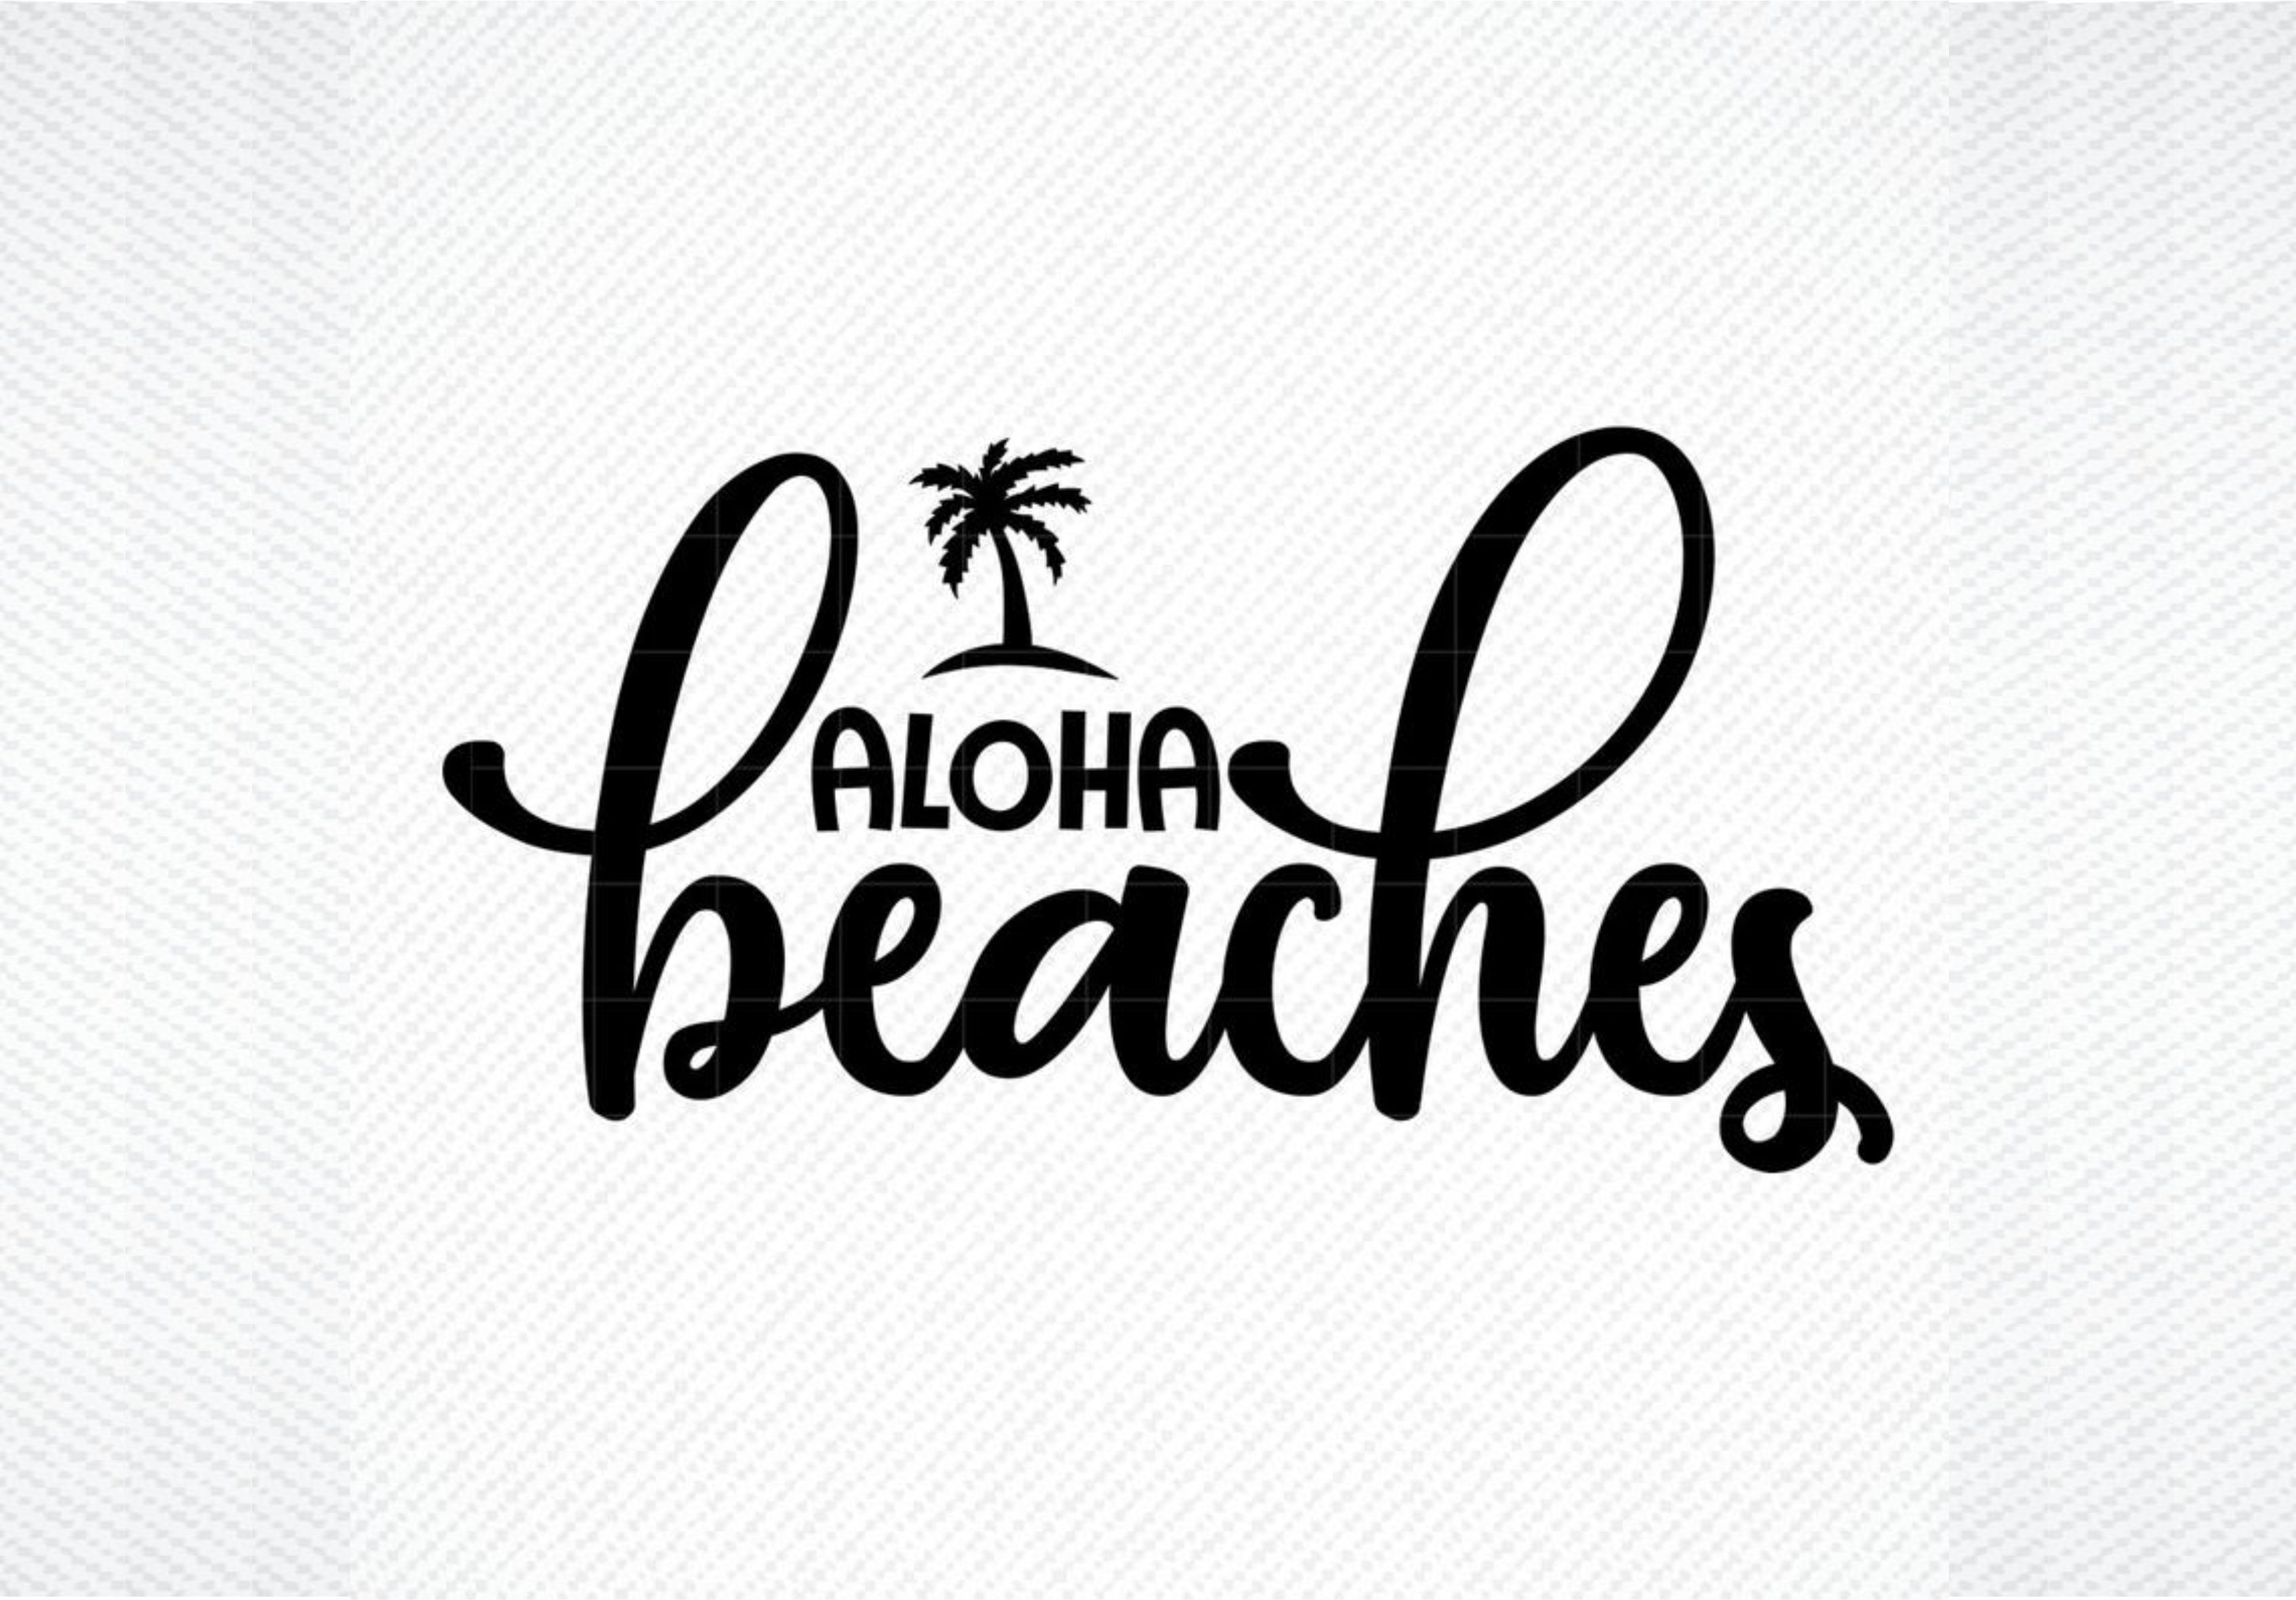 Download Free Aloha Beaches Graphic By Svg Den Creative Fabrica for Cricut Explore, Silhouette and other cutting machines.